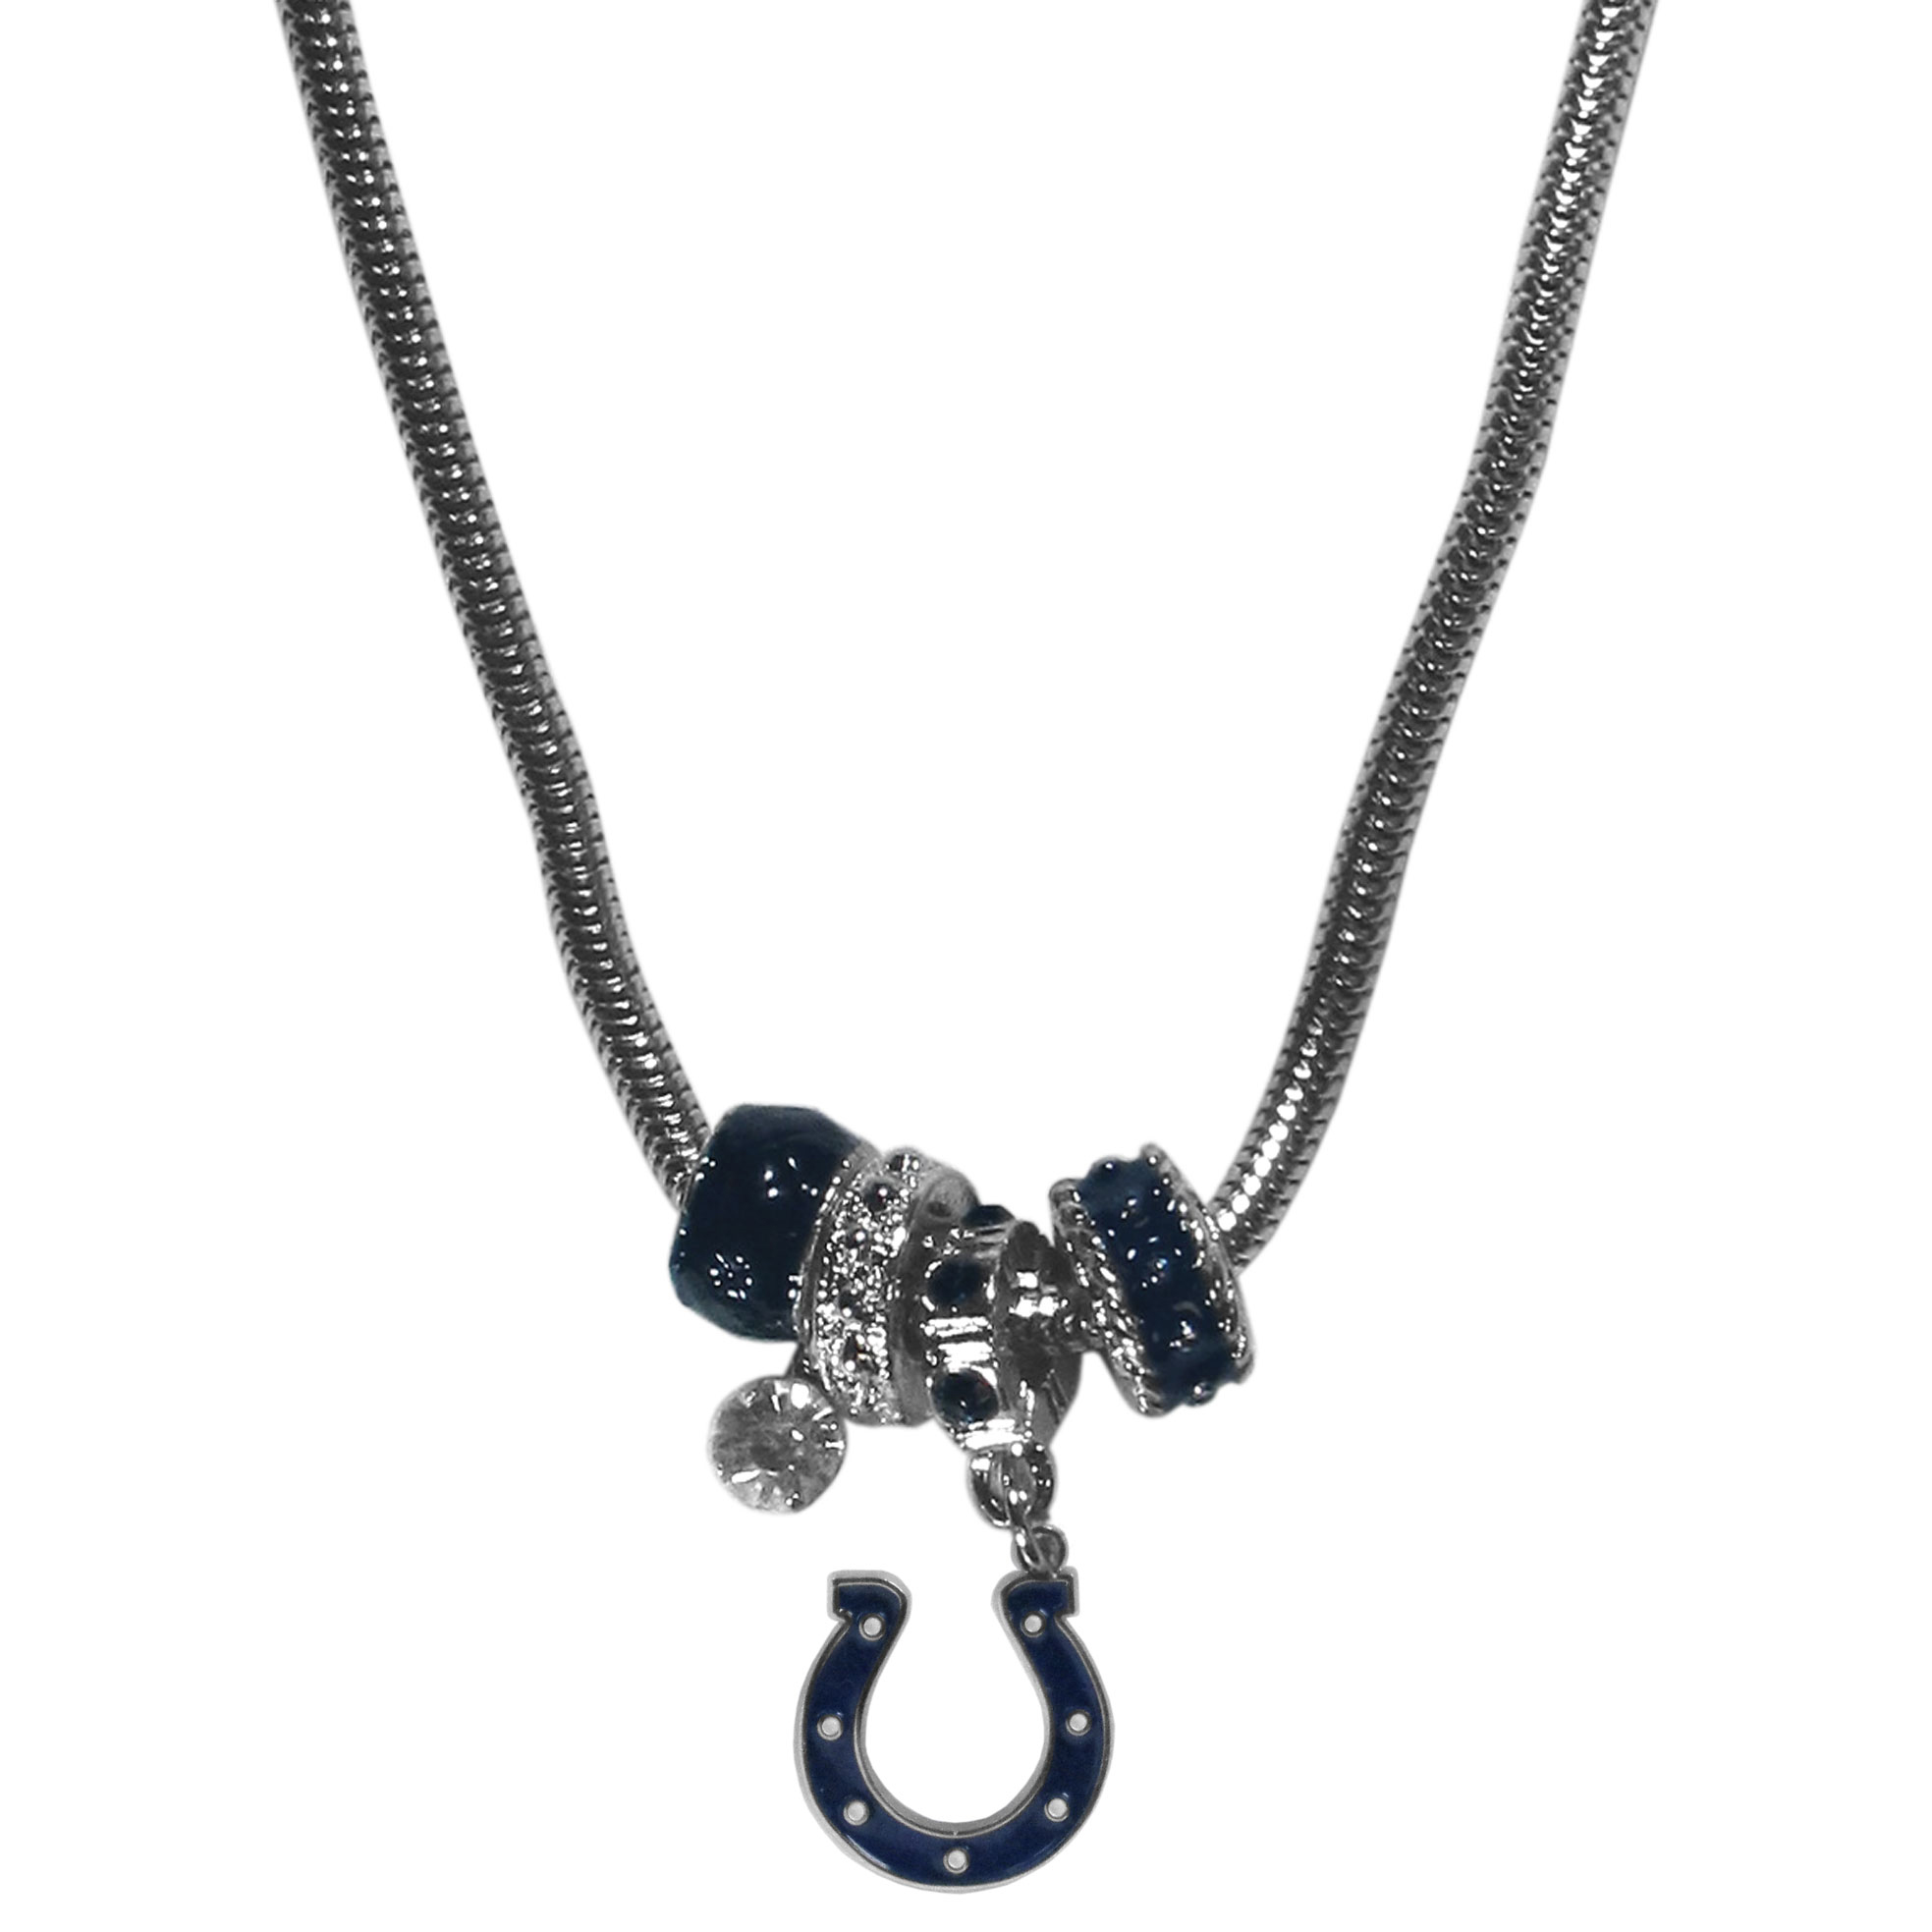 Indianapolis Colts Euro Bead Necklace - We have combined the wildly popular Euro style beads with your favorite team to create our Indianapolis Colts bead necklace. The 18 inch snake chain features 4 Euro beads with enameled team colors and rhinestone accents with a high polish, nickel free charm and rhinestone charm. Perfect way to show off your team pride.